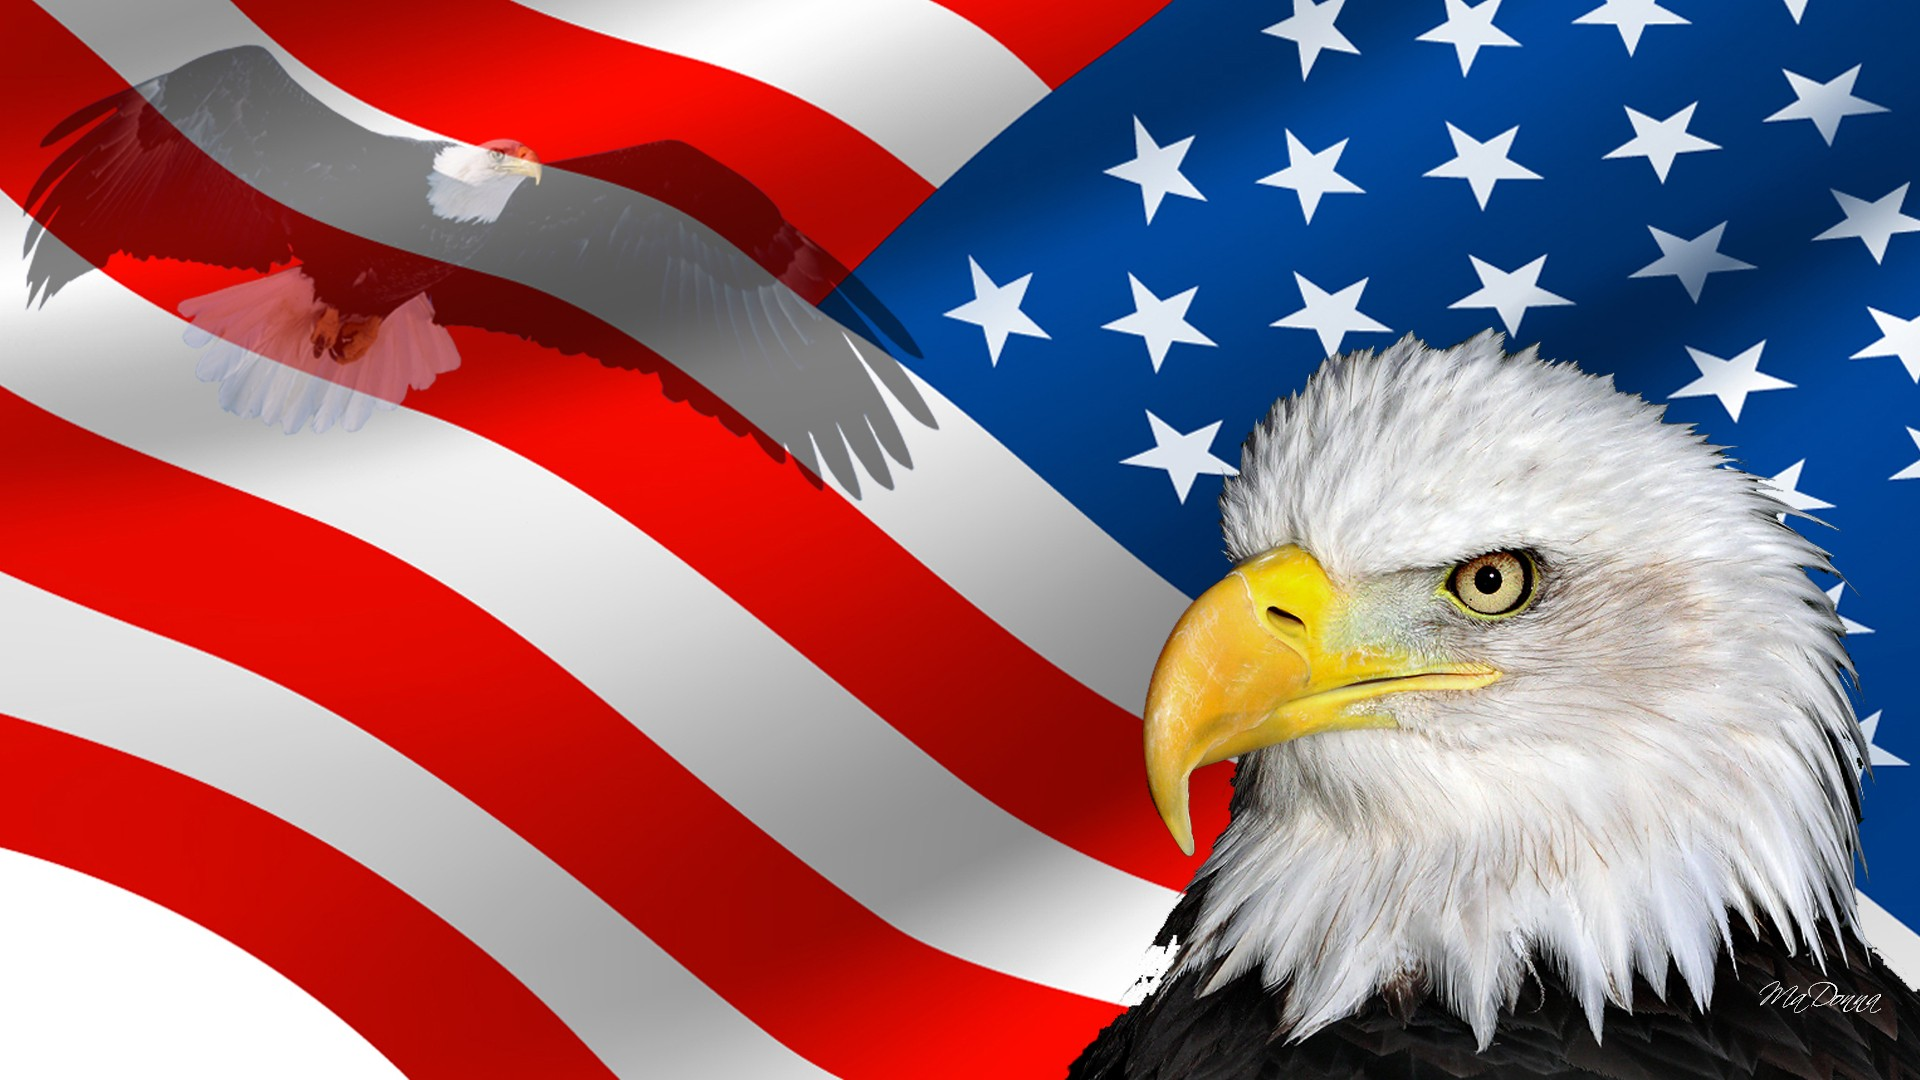 HD USA Wallpapers The Beauty Of Diversity In USA 1920x1080